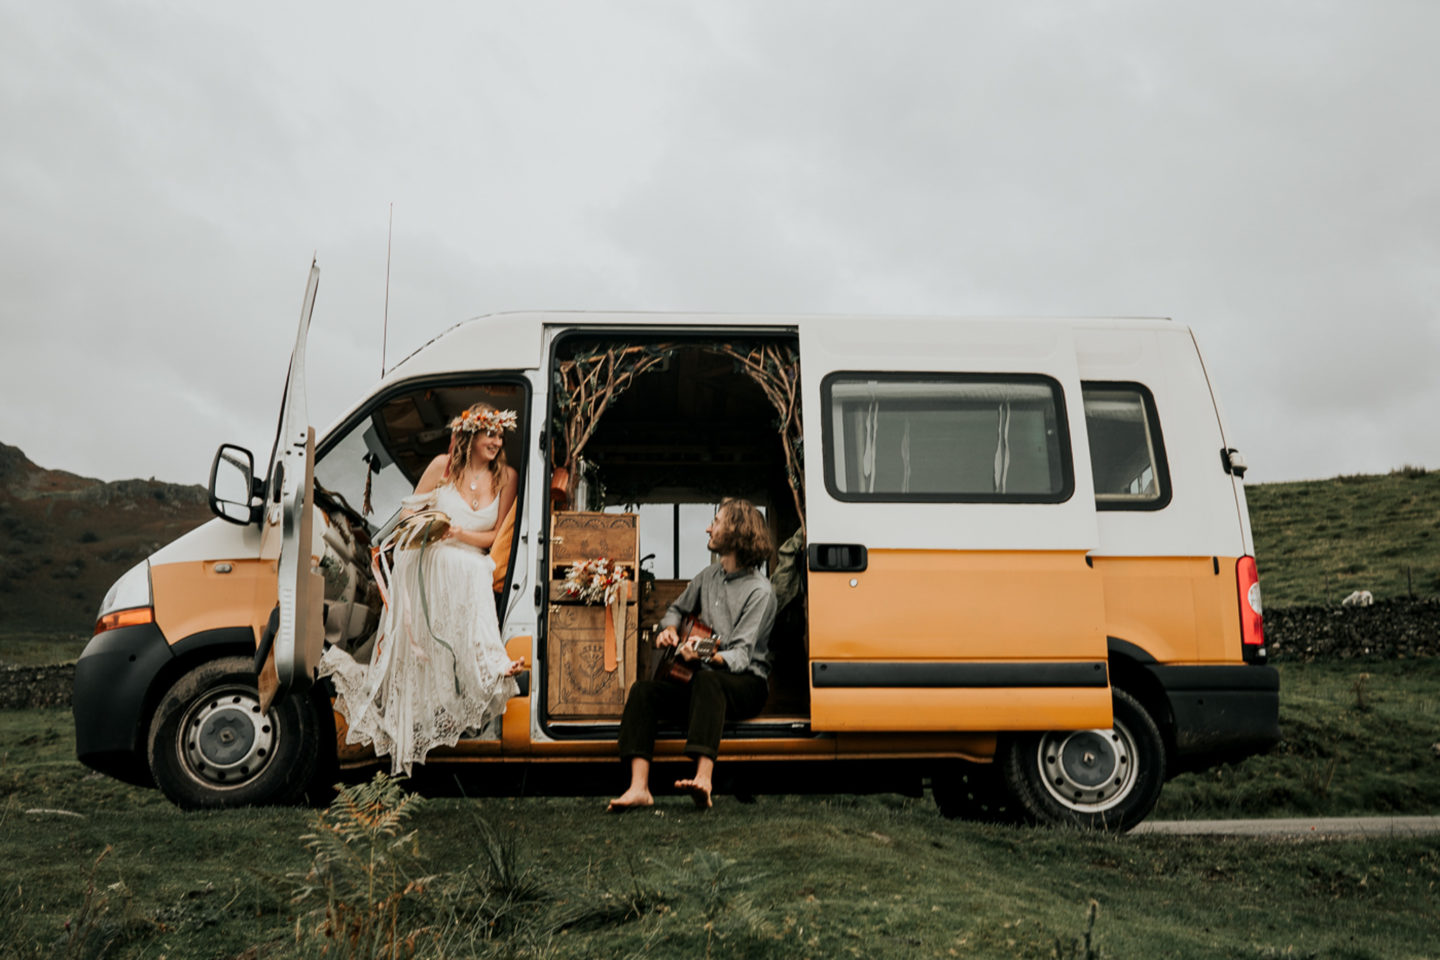 Intimate Lake District Wedding With A Vintage Campervan and Folklore Vibe